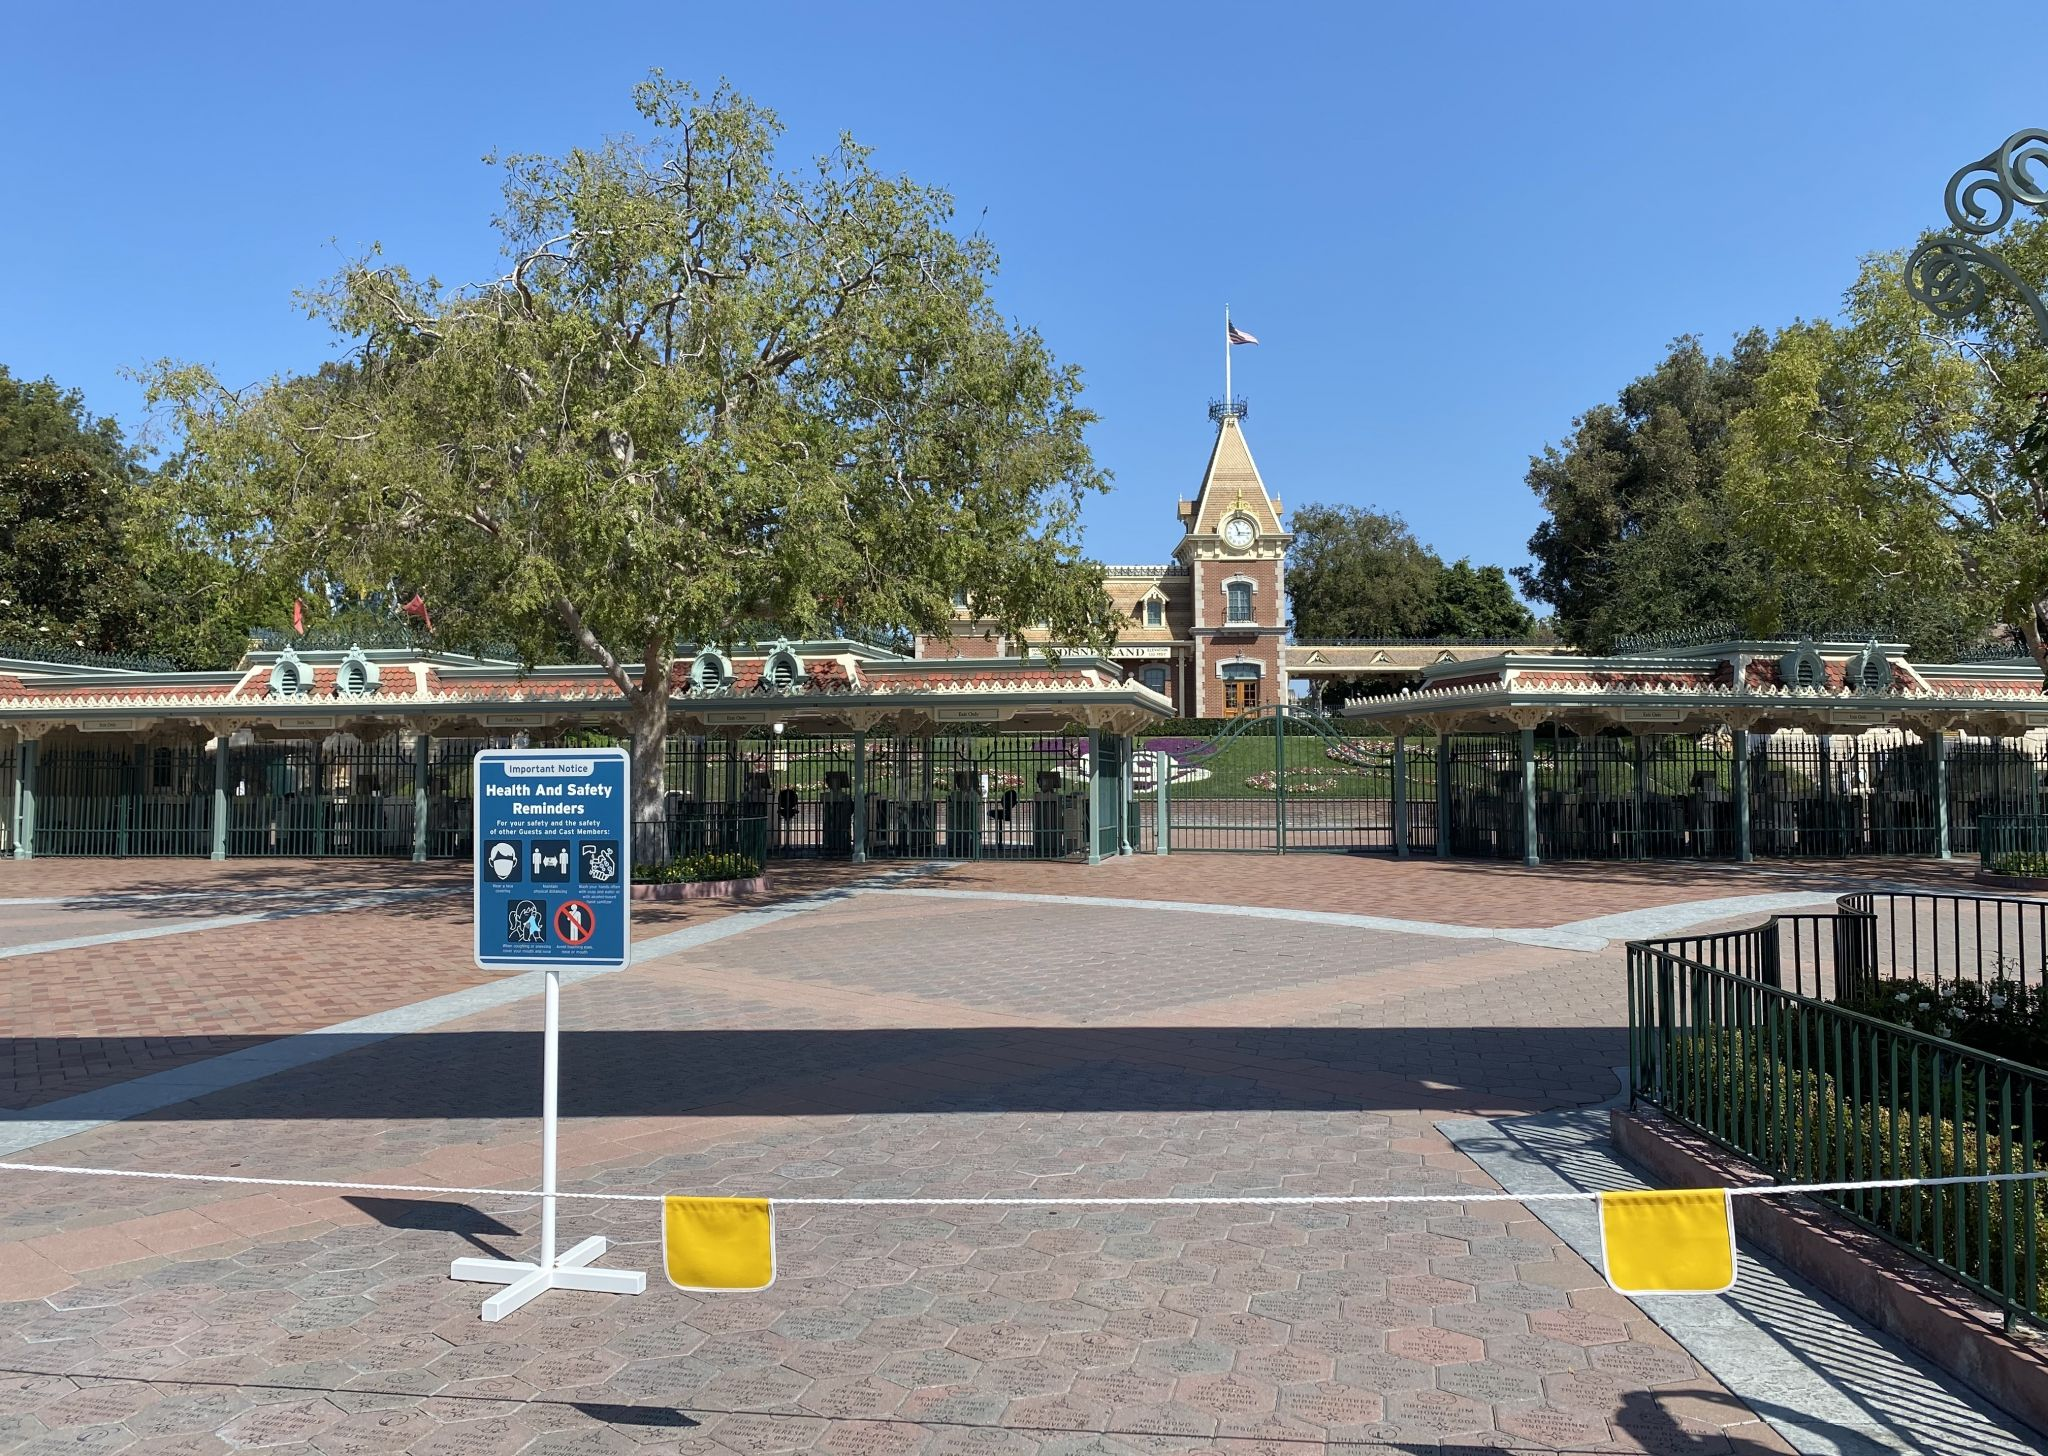 Is Disneyland reopening? No one knows.